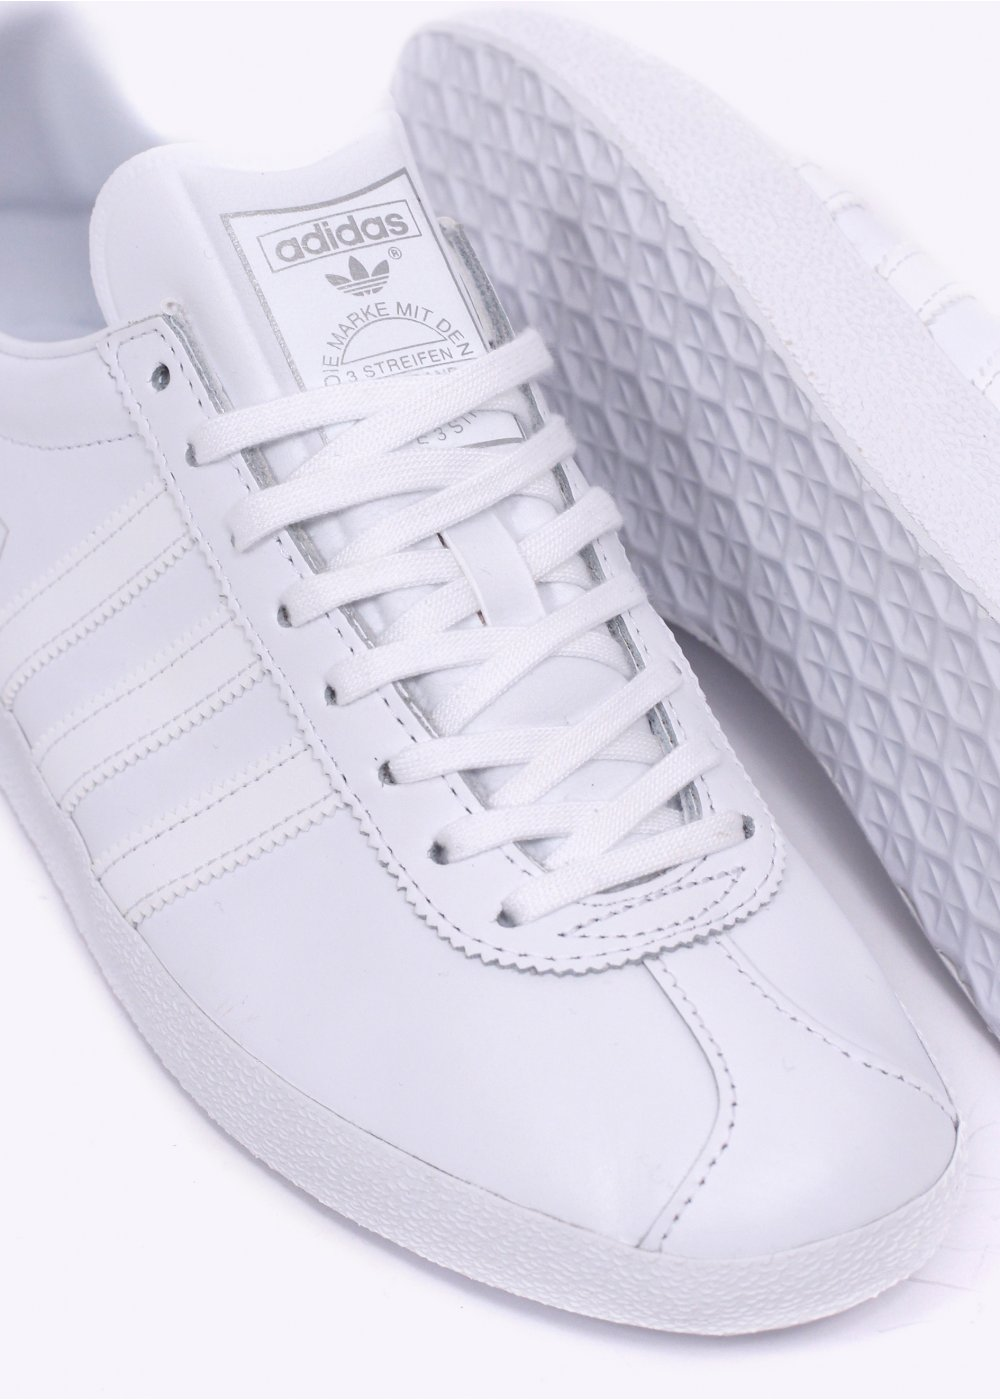 all white leather adidas gazelle